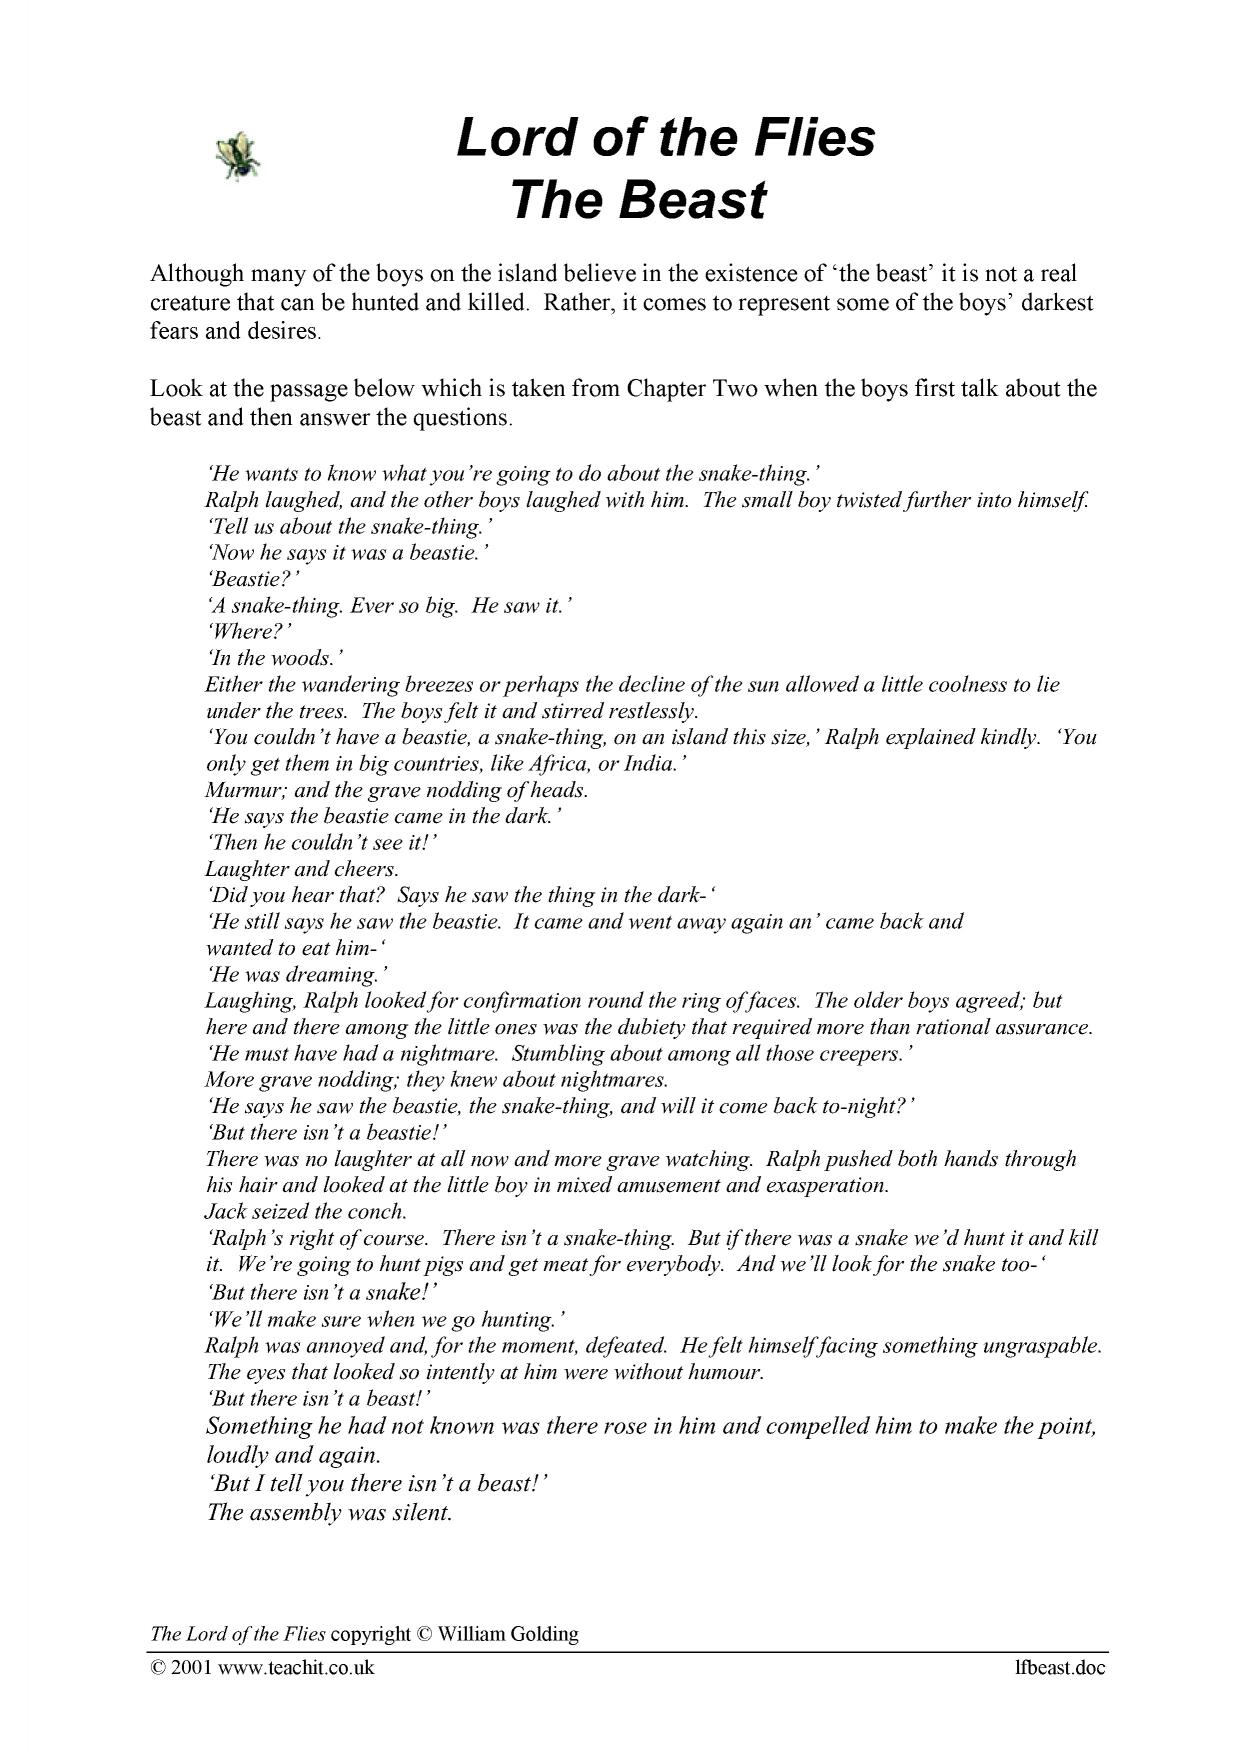 essay questions answers lord flies Good lord of the flies essay questions for college and high school.